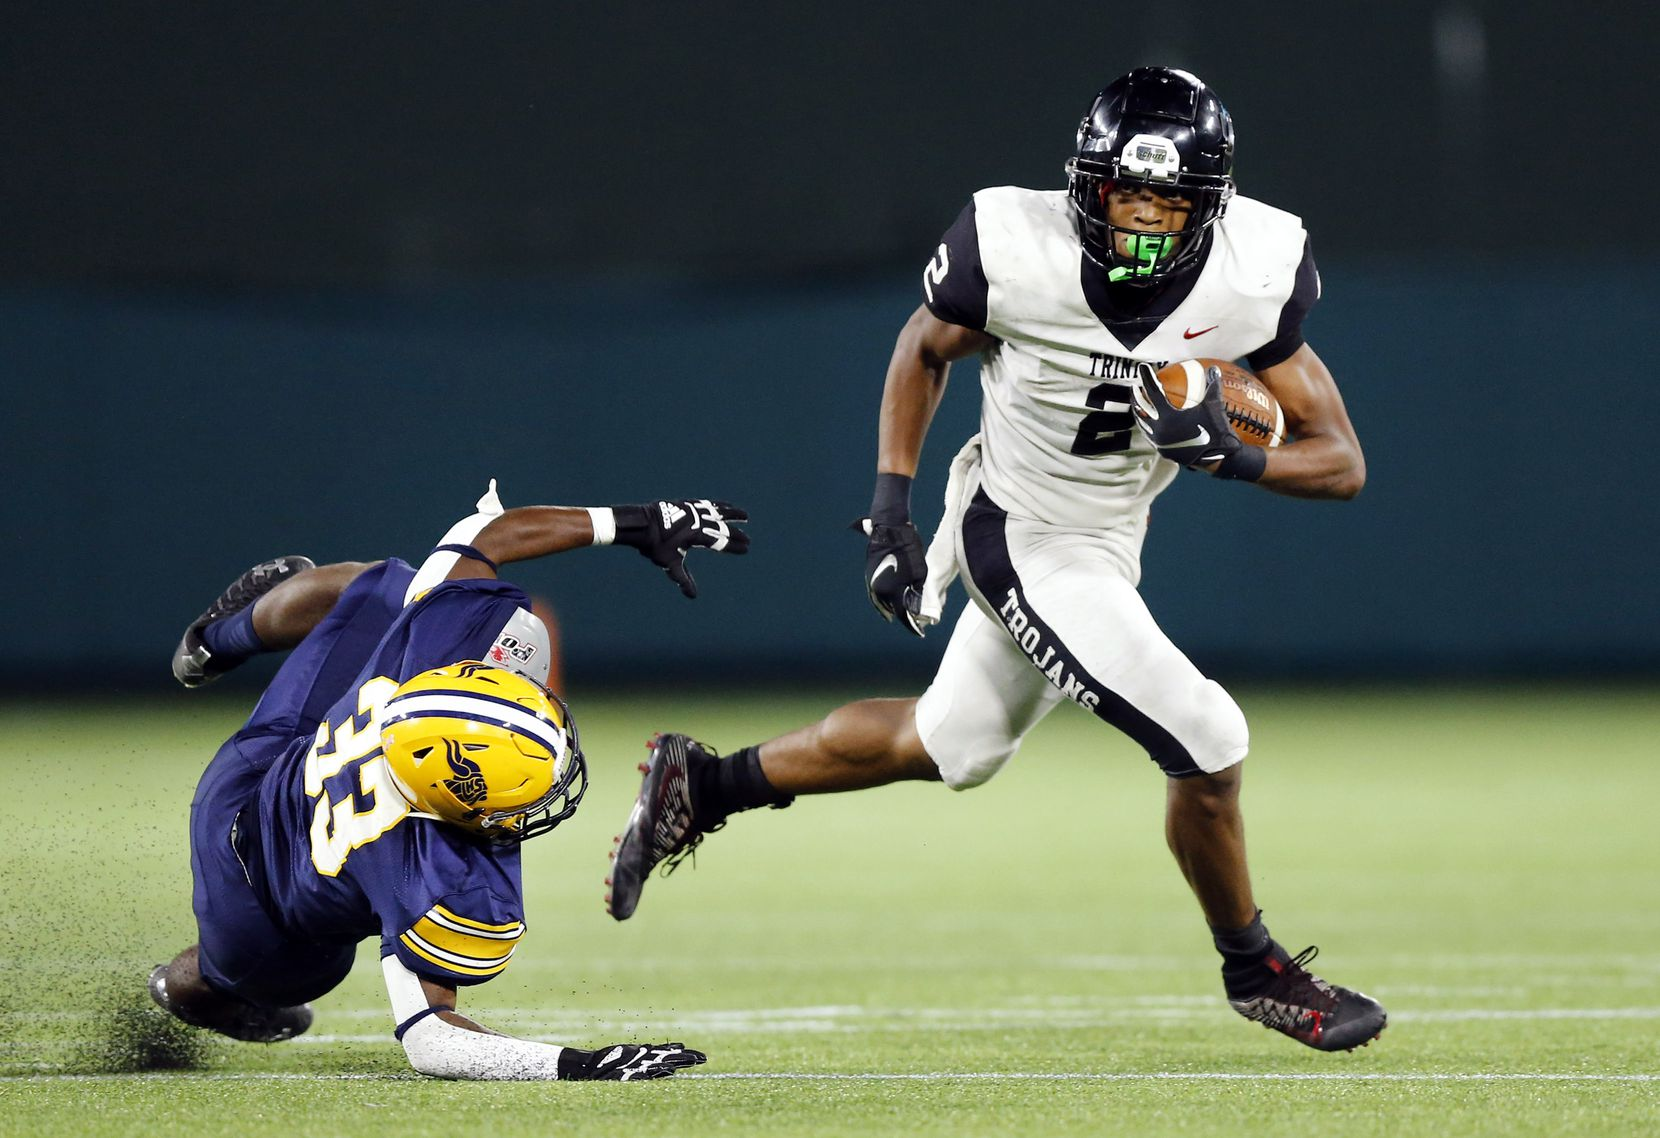 Euless Trinity's Ollie Gordon ran for 2,035 yards and 29 touchdowns last season and now moves from running back to quarterback. (Tom Fox/The Dallas Morning News)